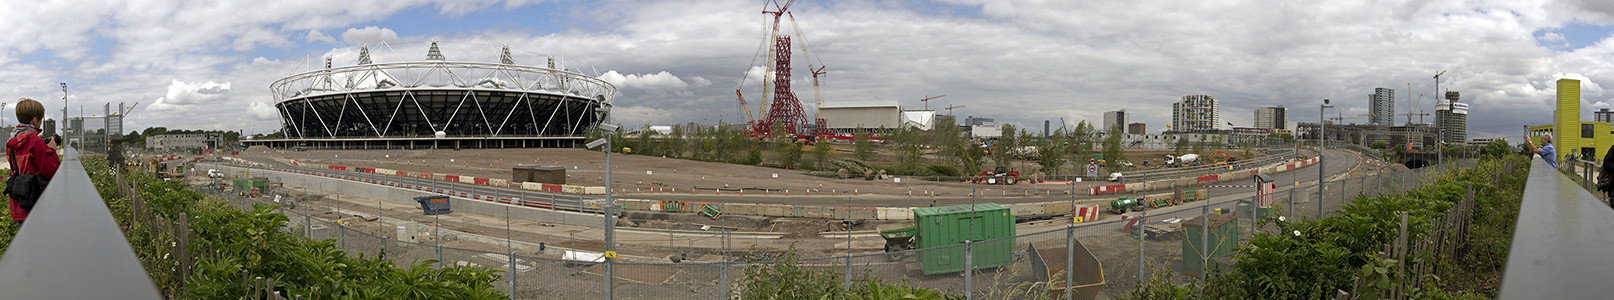 Olympiapark (Olympic Park): Olympiastadion, ArcelorMittal Orbit, London Aquatics Centre London